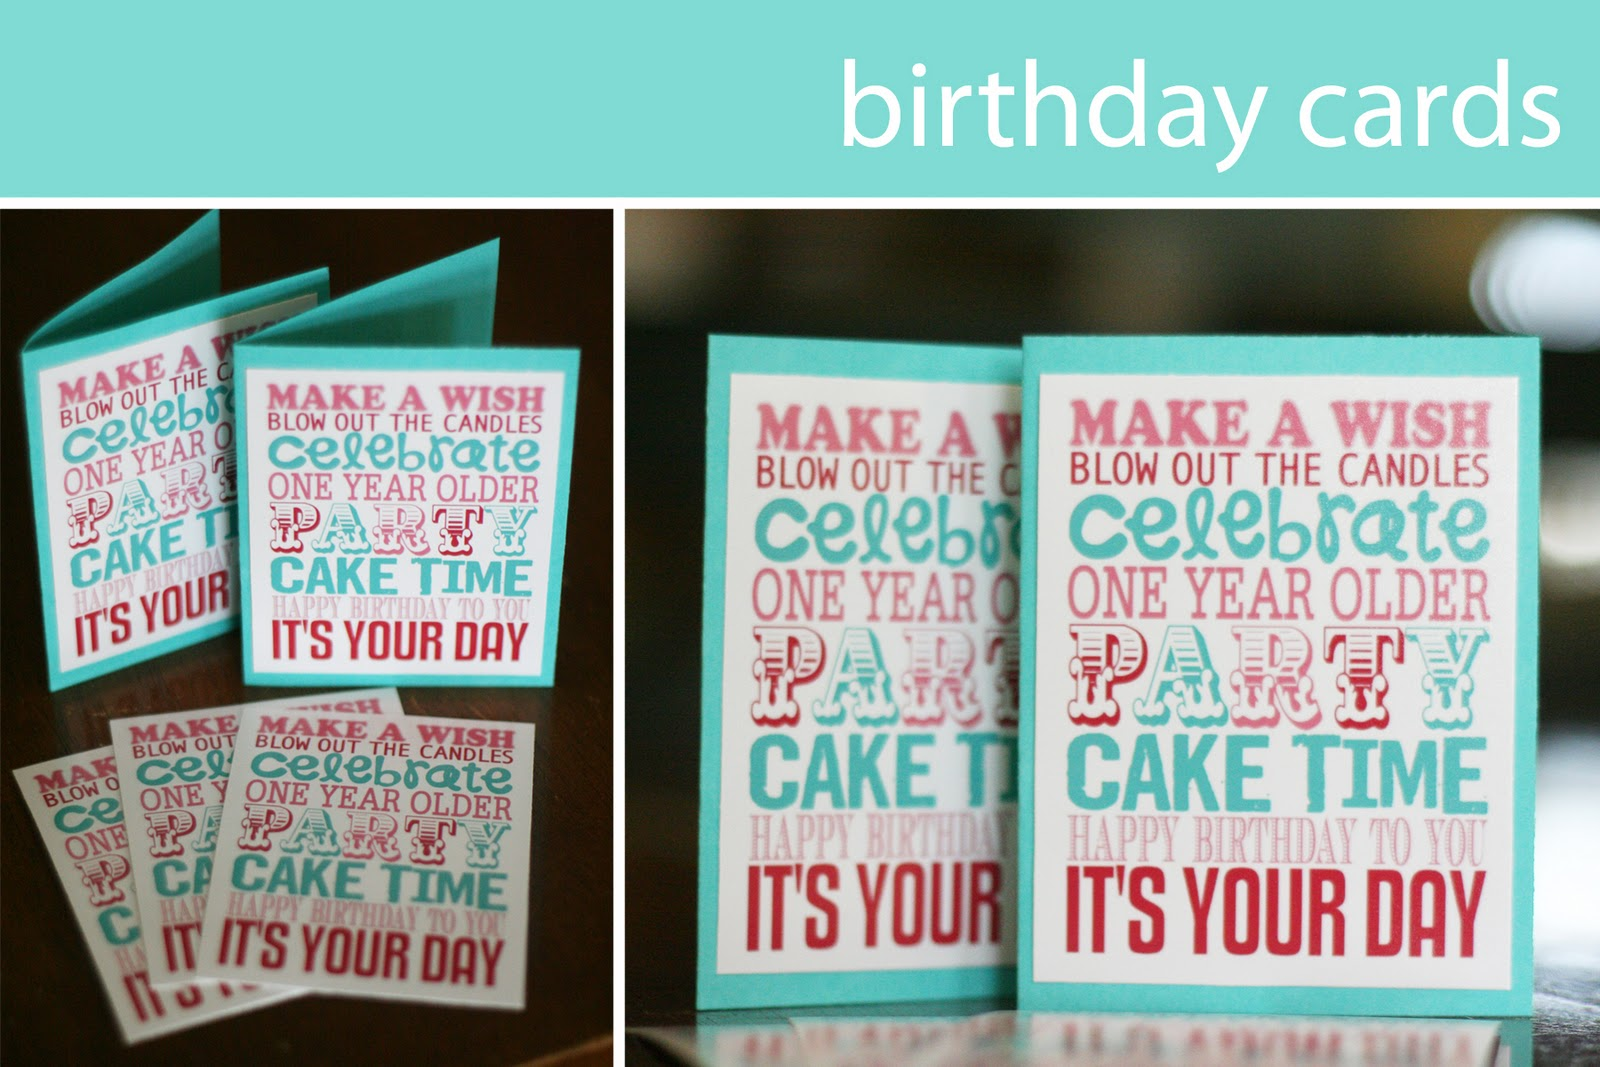 Inspiration for Celebration: Free Printable Birthday Subway Art by ...: www.inspirationforcelebration.com/2011/03/free-printable-birthday...